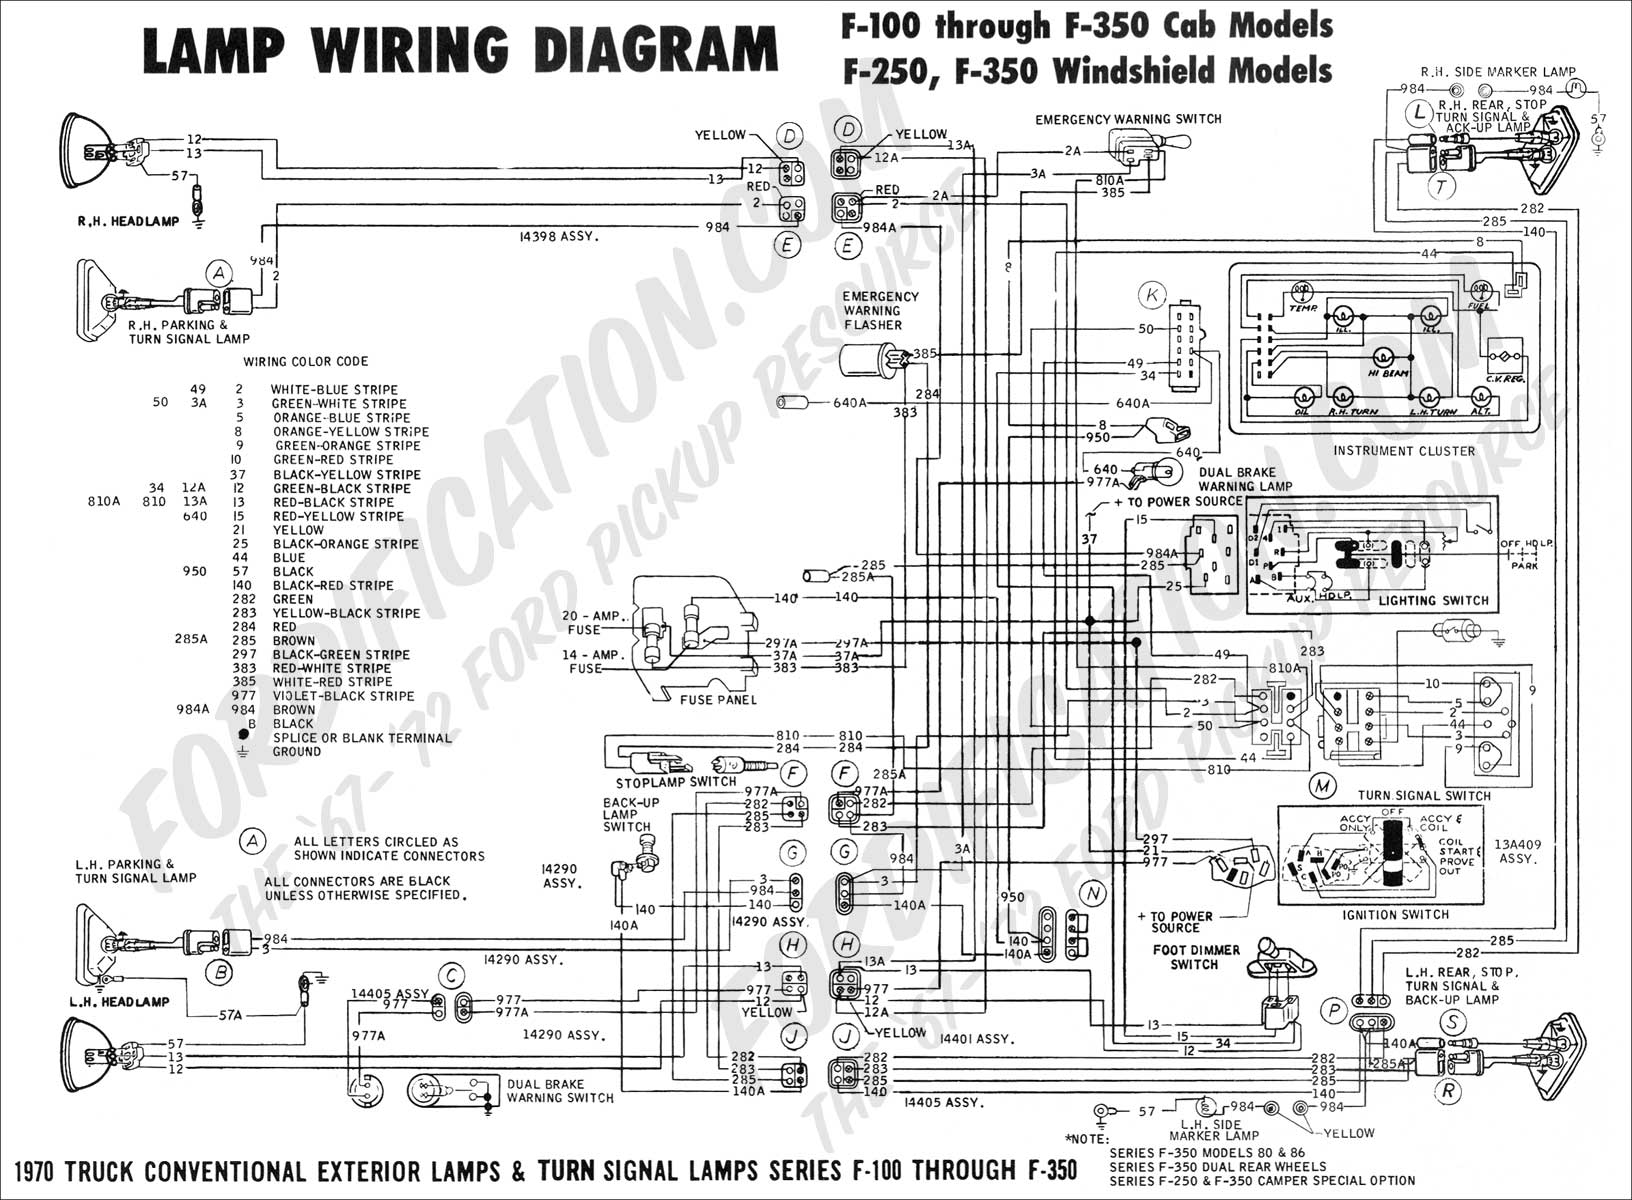 1999 ford f350 wiring diagram wiring diagram and schematic design super duty on 1999 f350 ford f450 wiring diagram james gaffigan